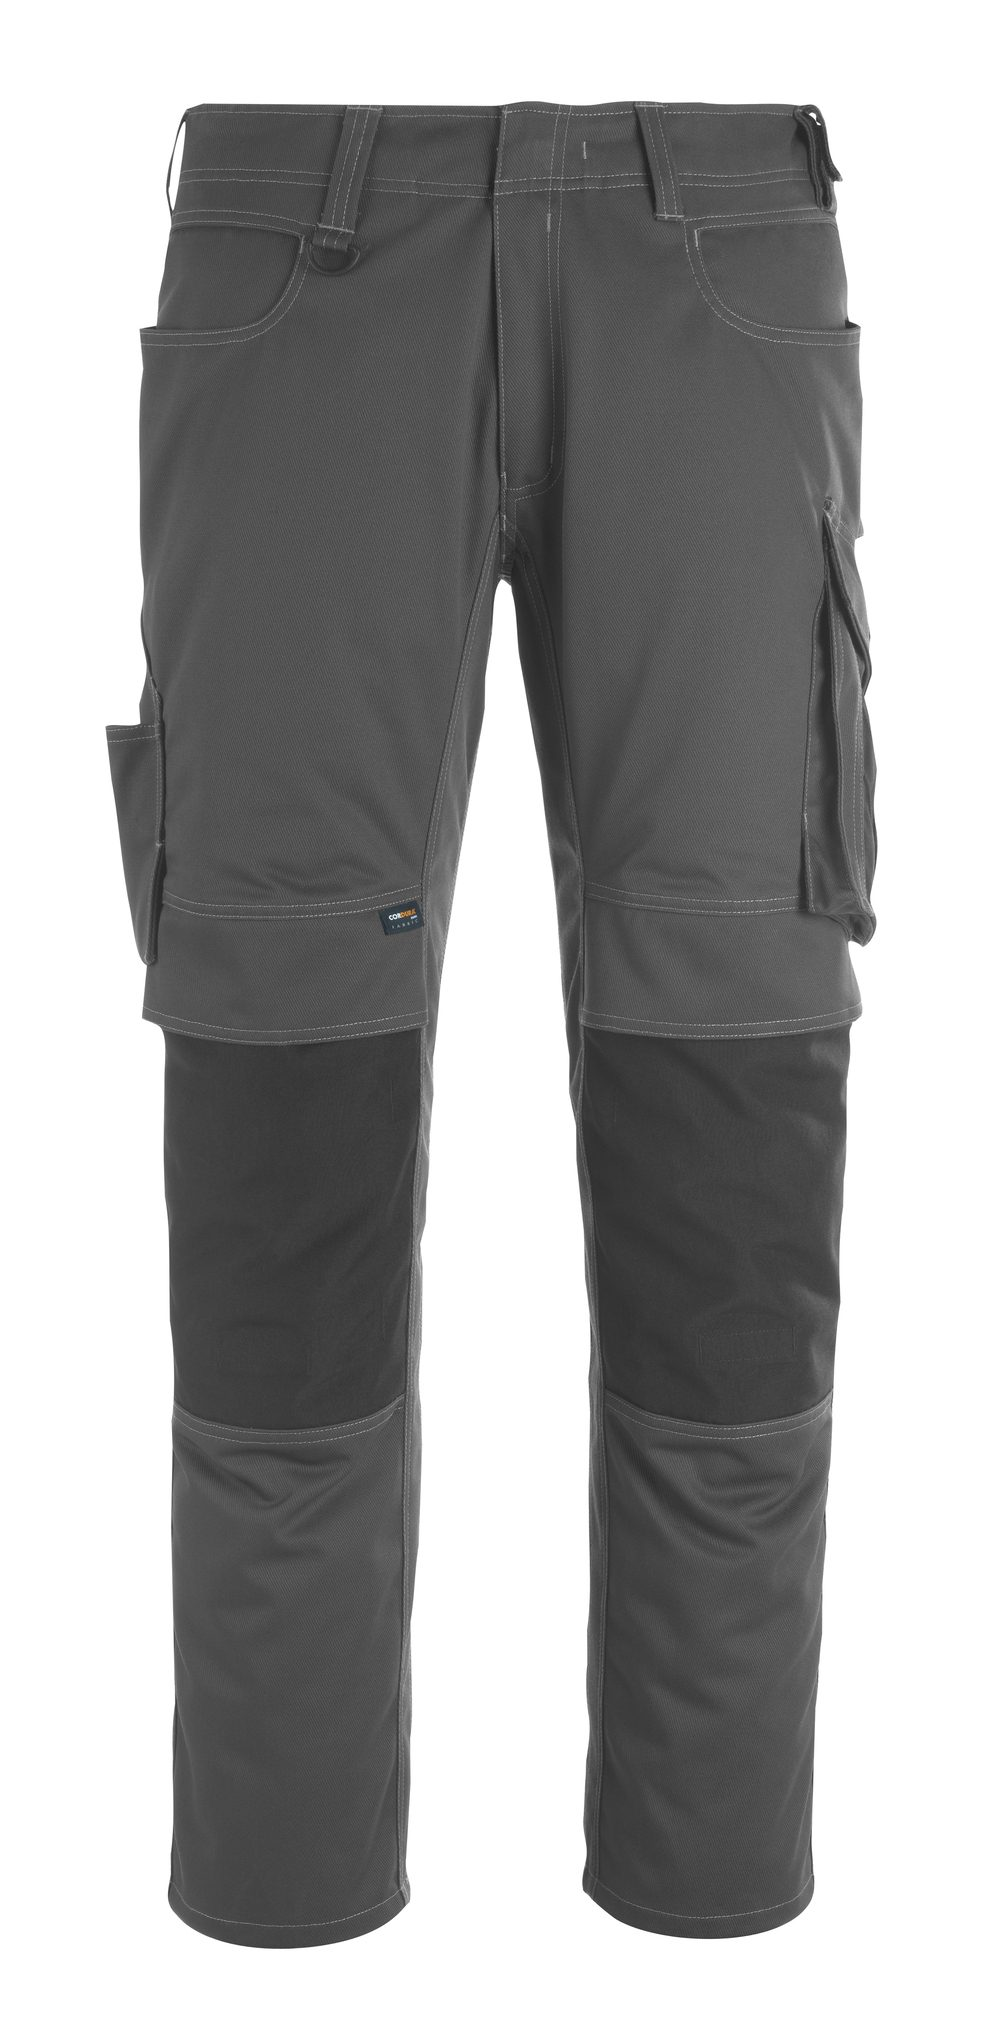 Erfurt Pants - DARK GREY / BLACK - 1809